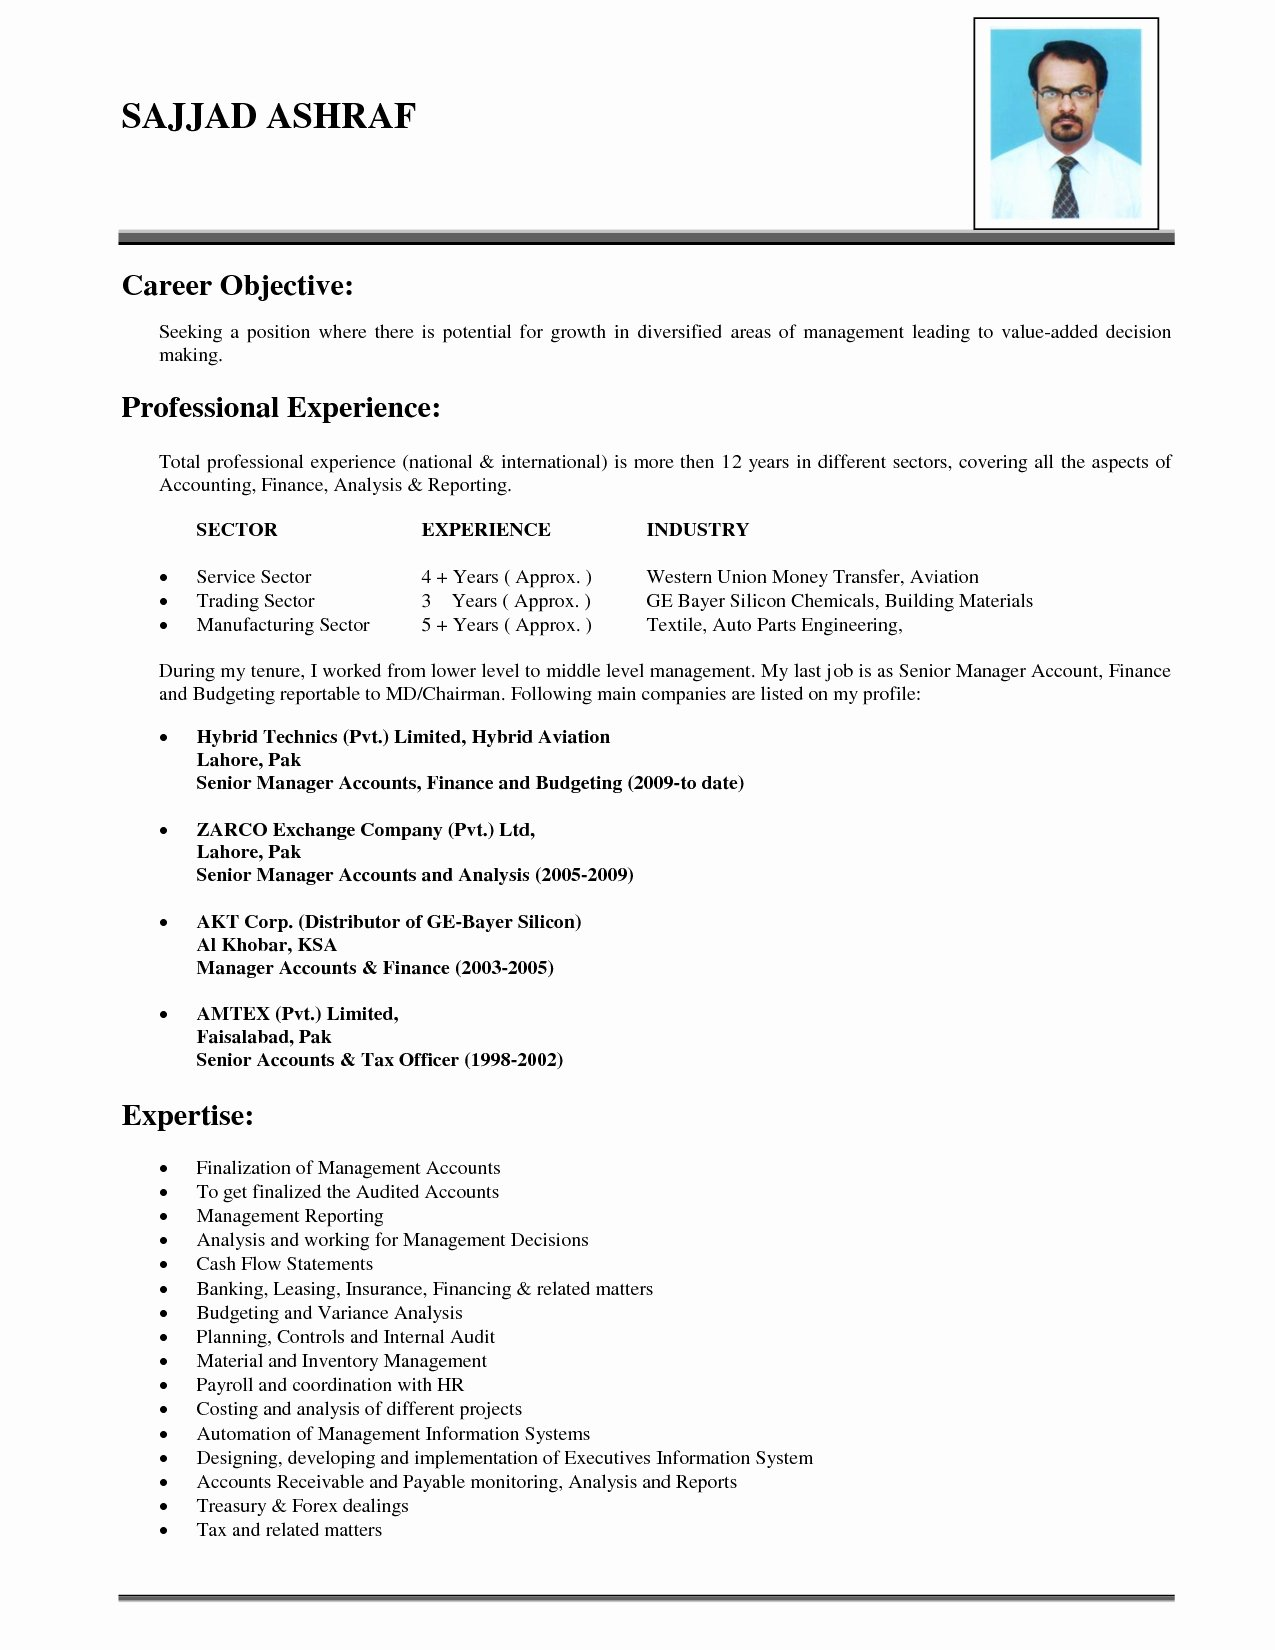 Career Change Objective Resume Sample